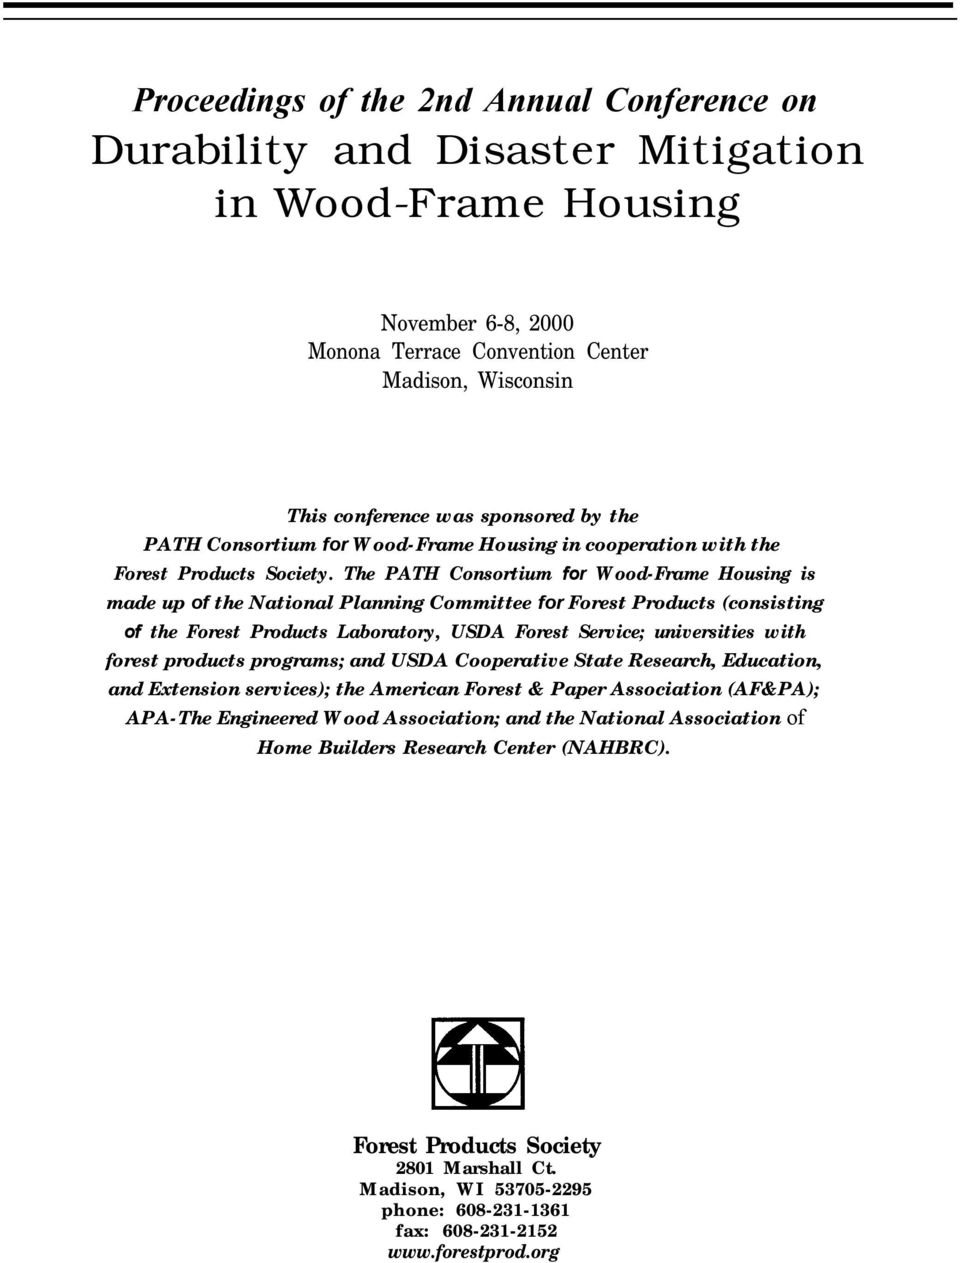 The PATH Consortium for Wood-Frame Housing is made up of the National Planning Committee for Forest Products (consisting of the Forest Products Laboratory, USDA Forest Service; universities with